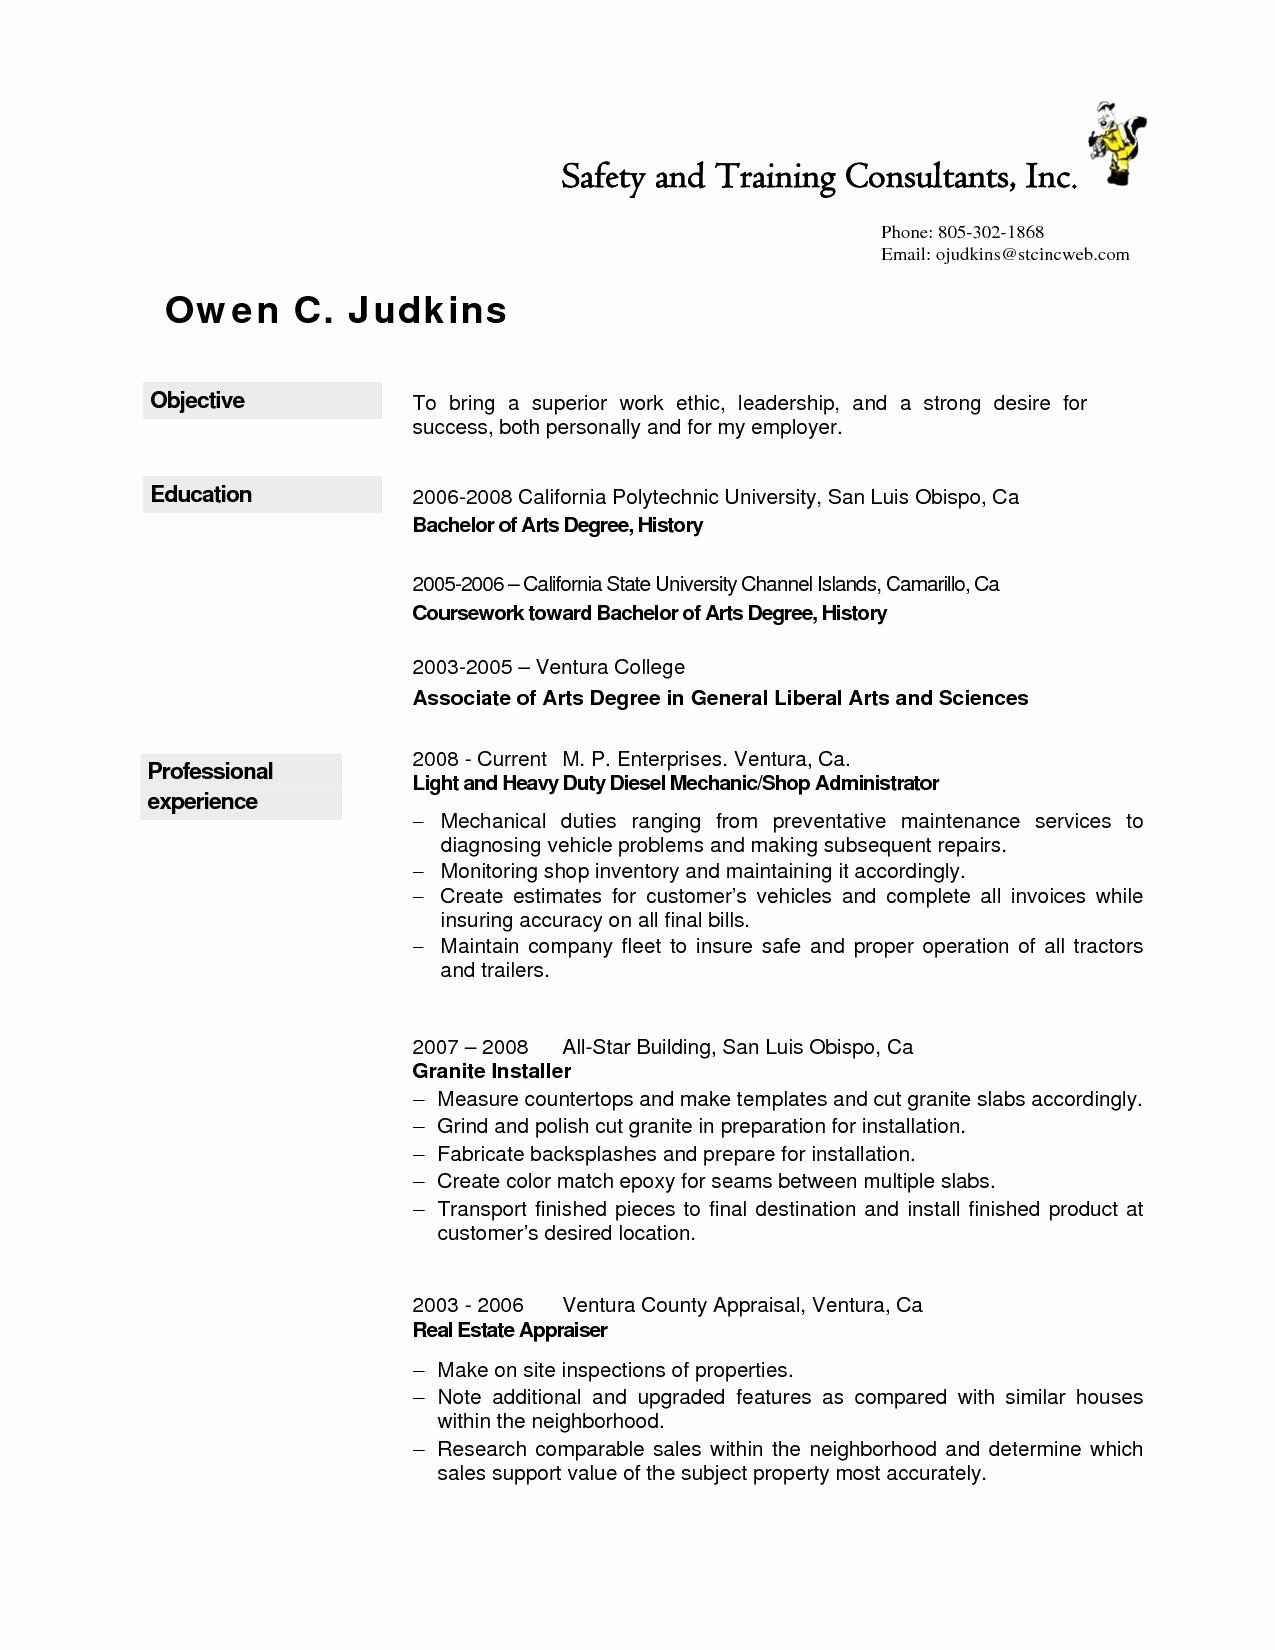 Dialysis Technician Resume Objective - Dialysis Technician Resume Sample Lovely New Generator Repair Sample